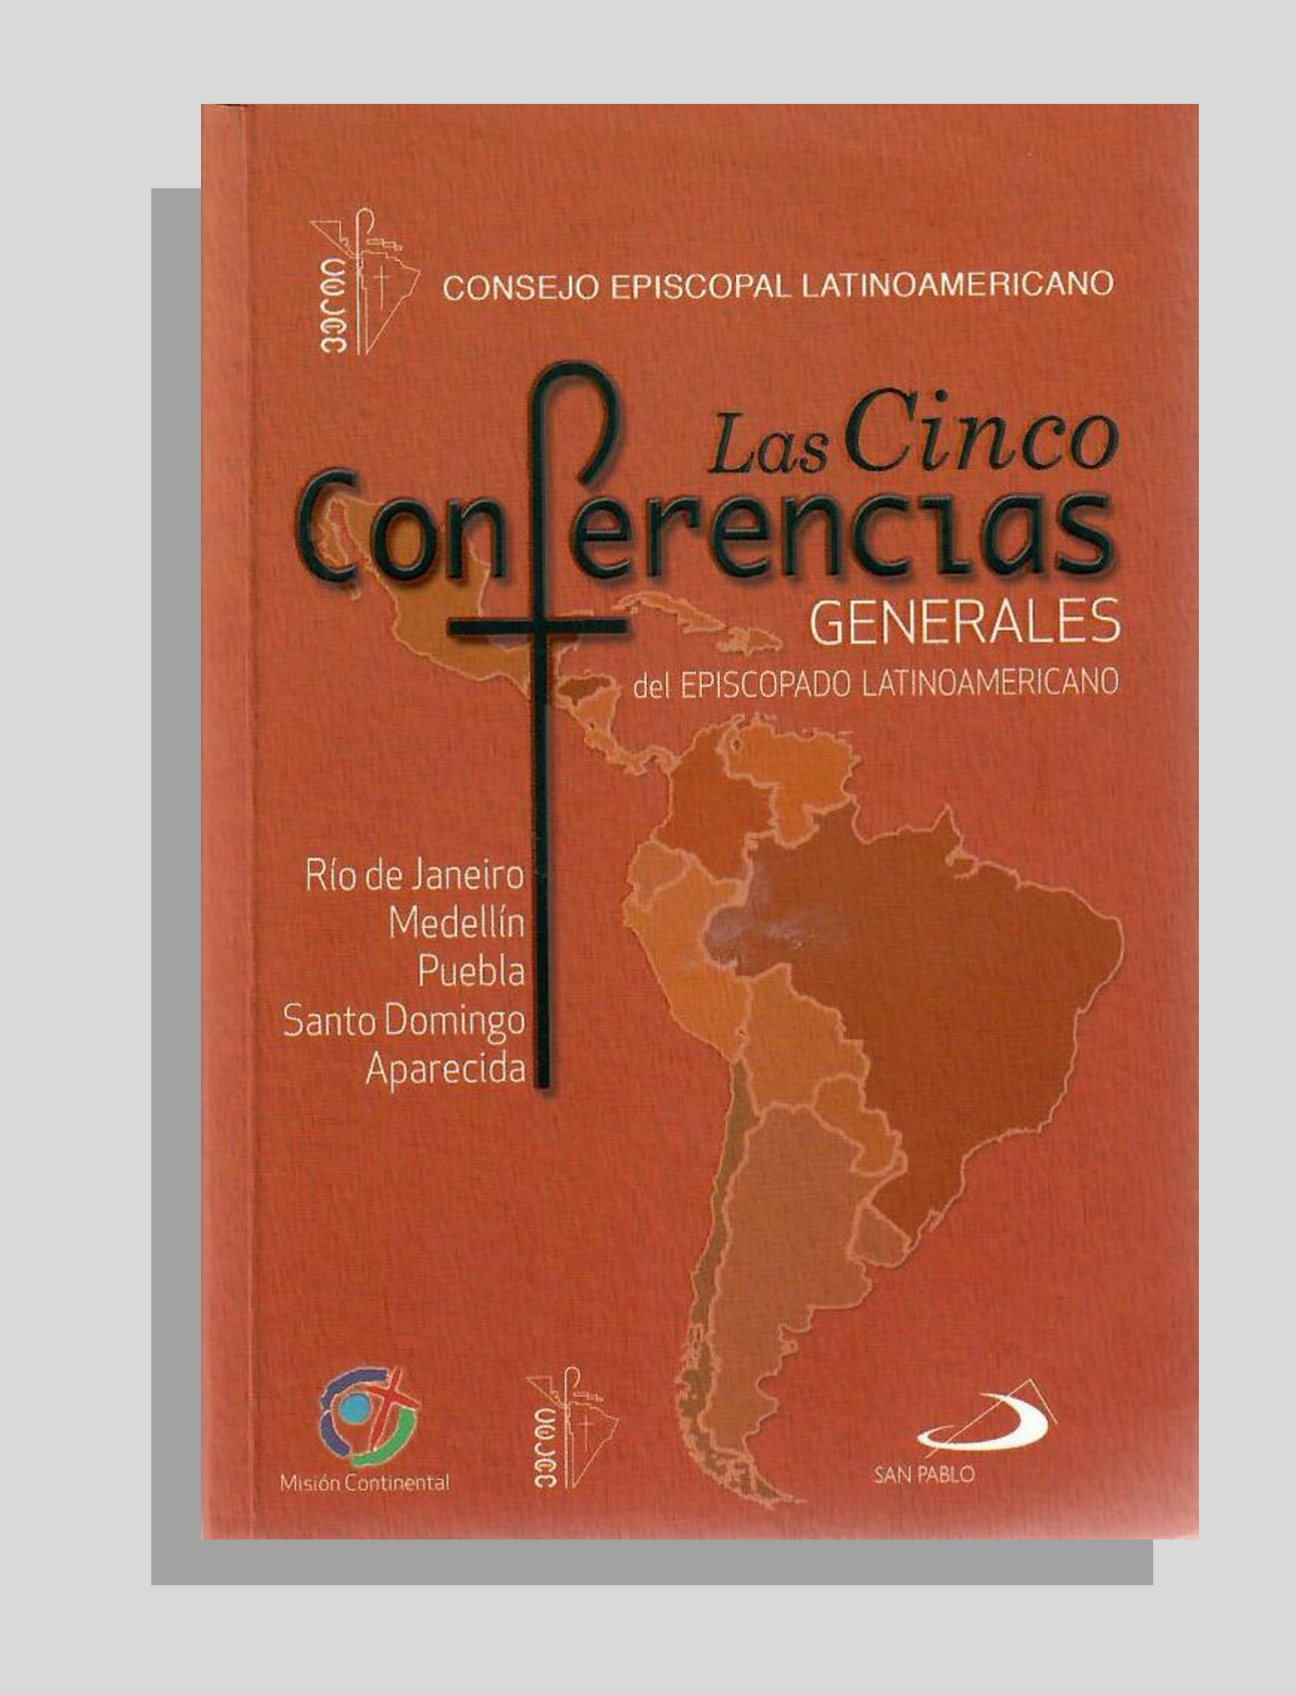 LAS CINCO CONFERENCIAS GENERALES DEL EPISCOPADO LATINOAMERICANO